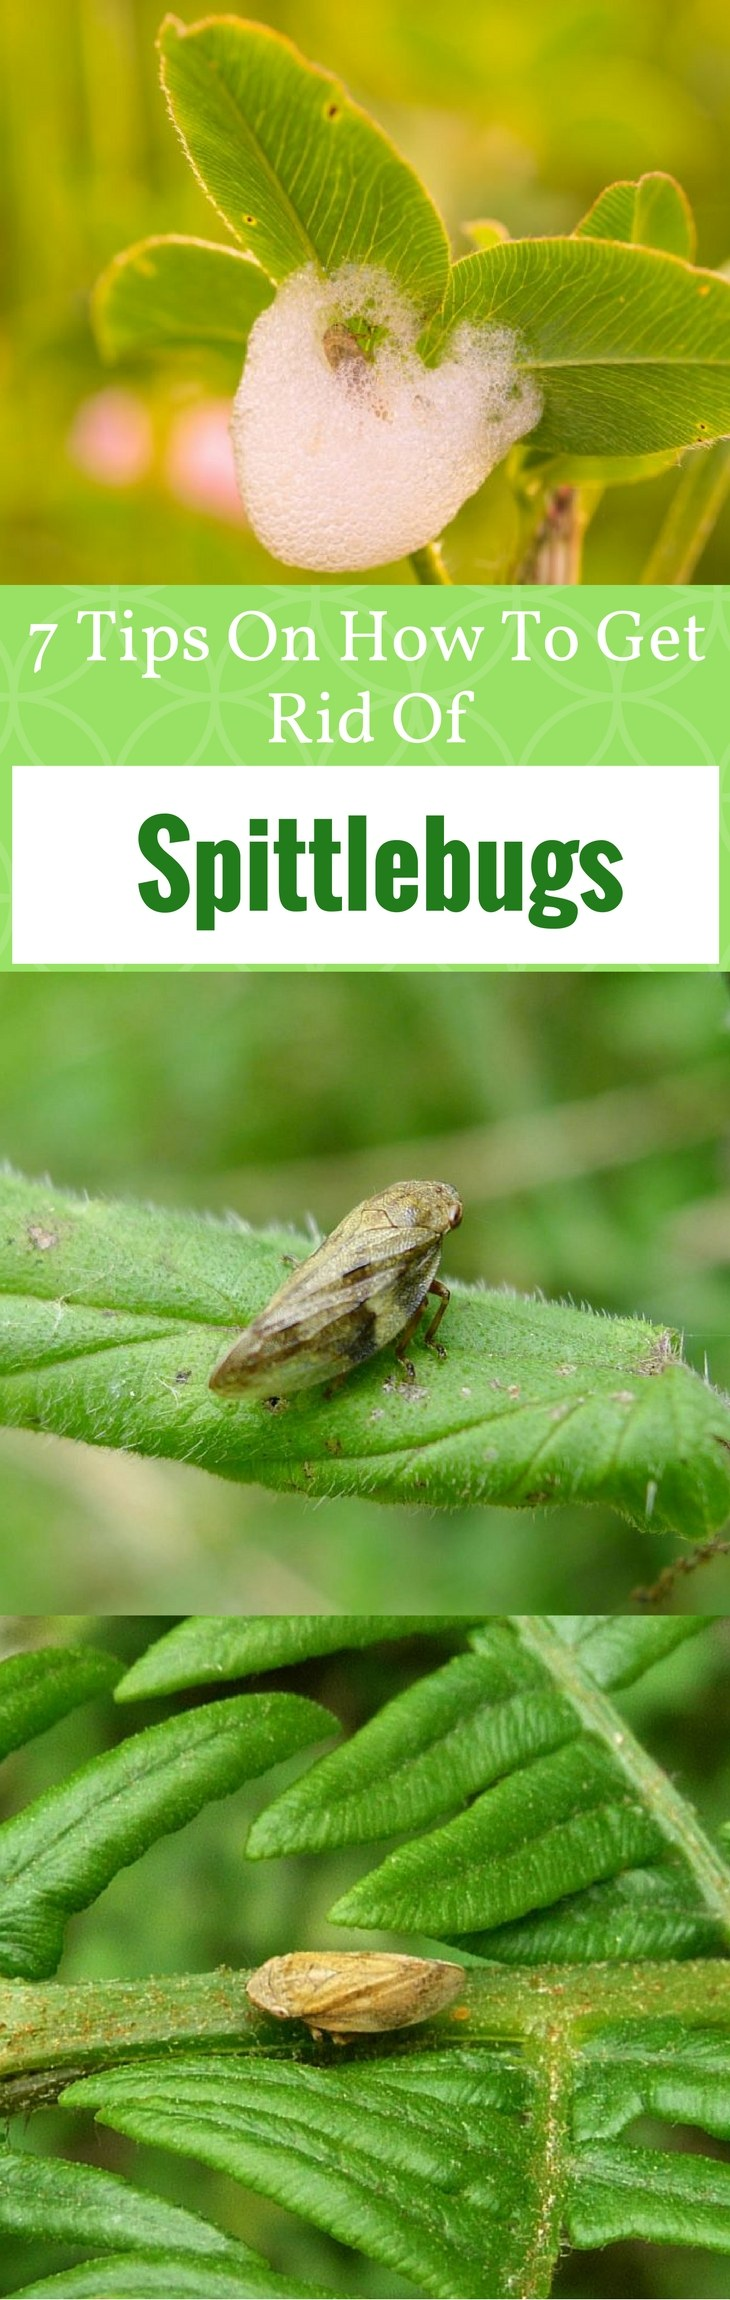 7 Tips On How To Get Rid Of Spittlebugs